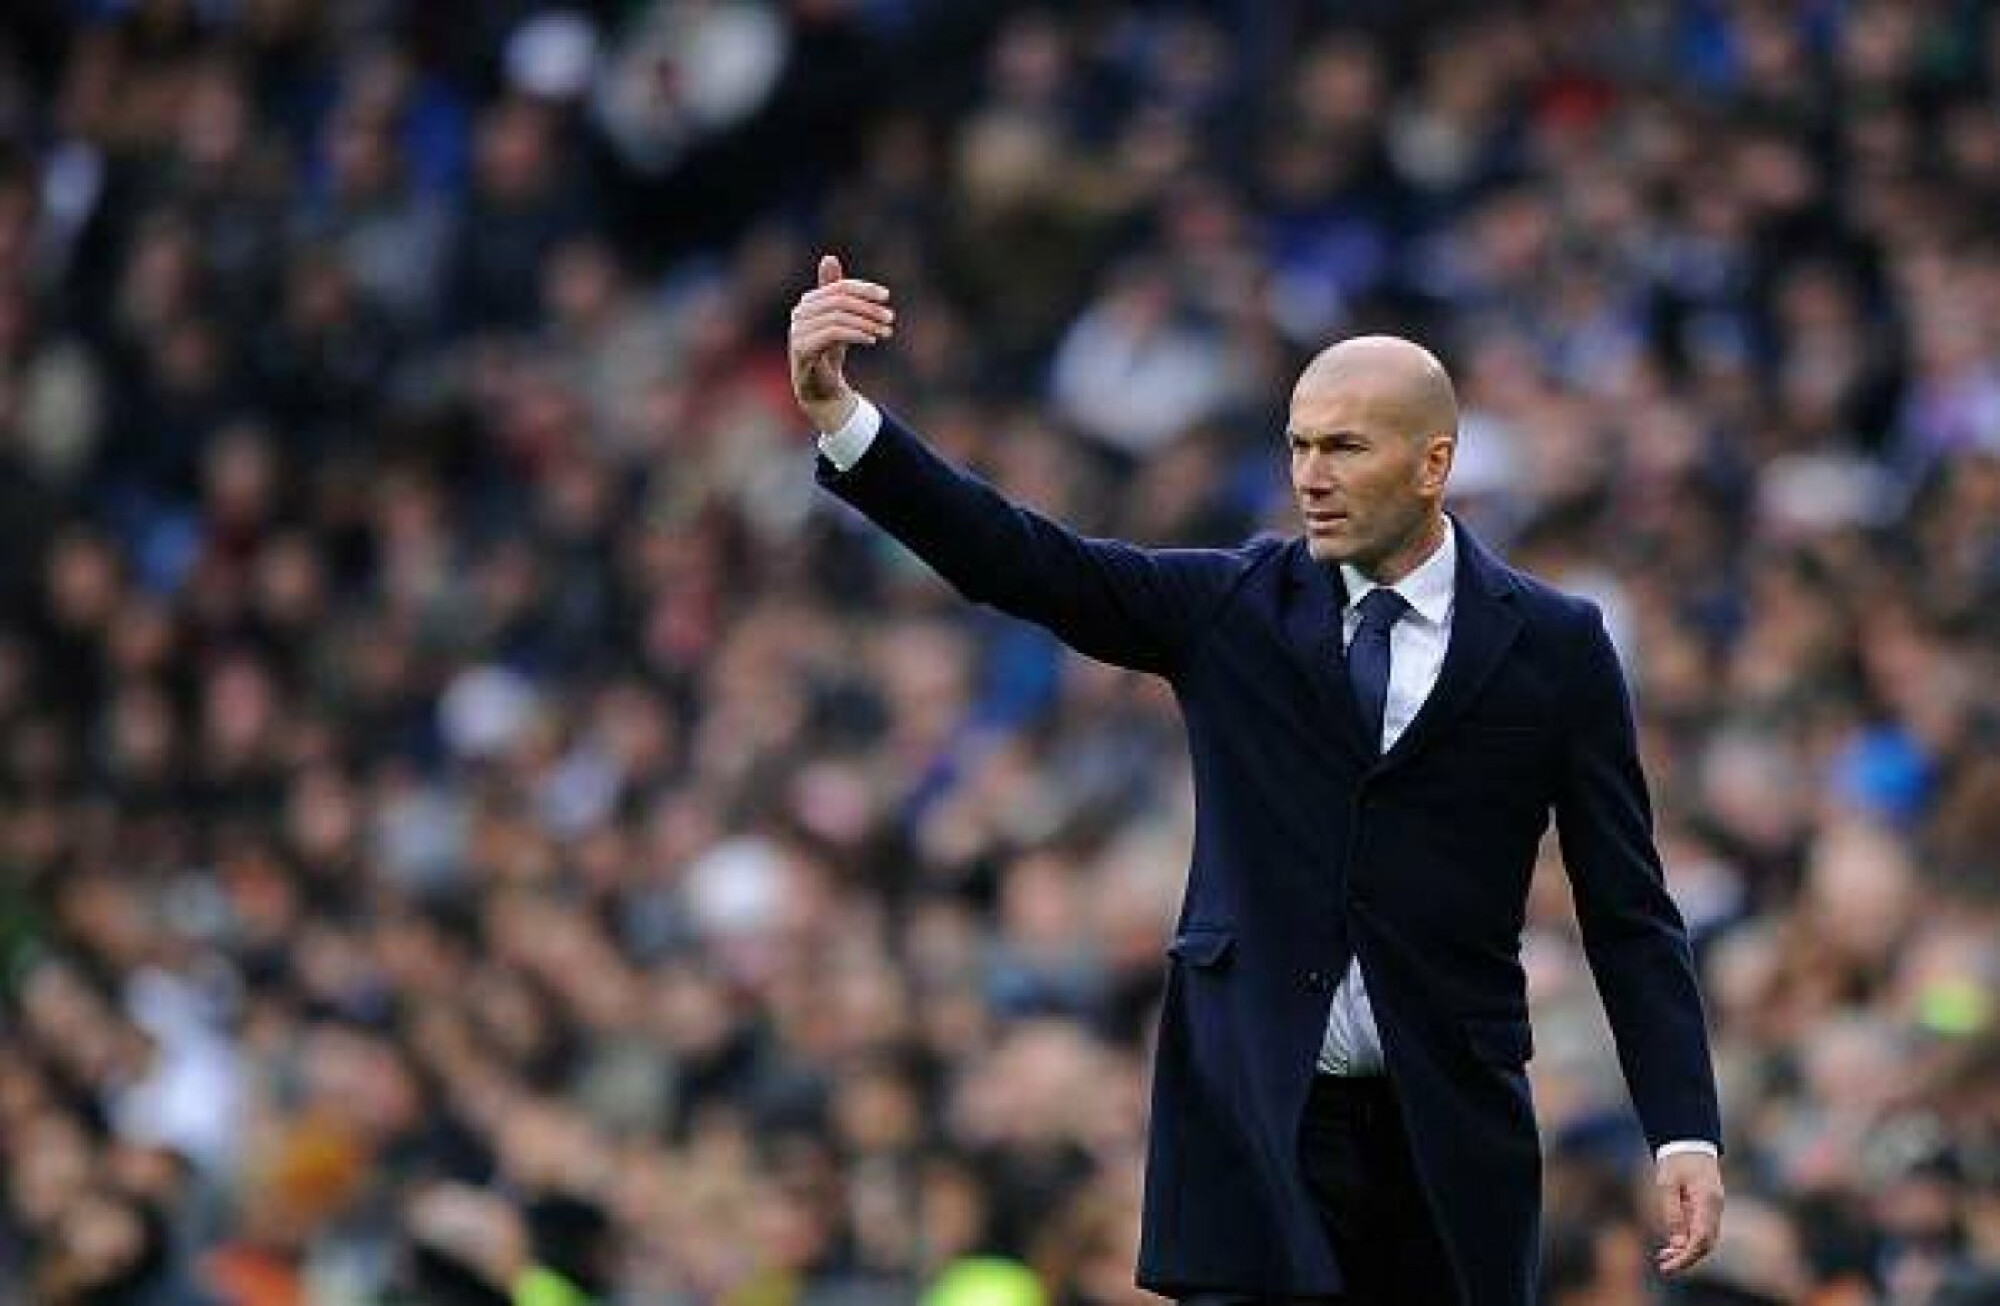 BREAKING NEWS: Zinedine Zidane returns at the helm of Real Madrid